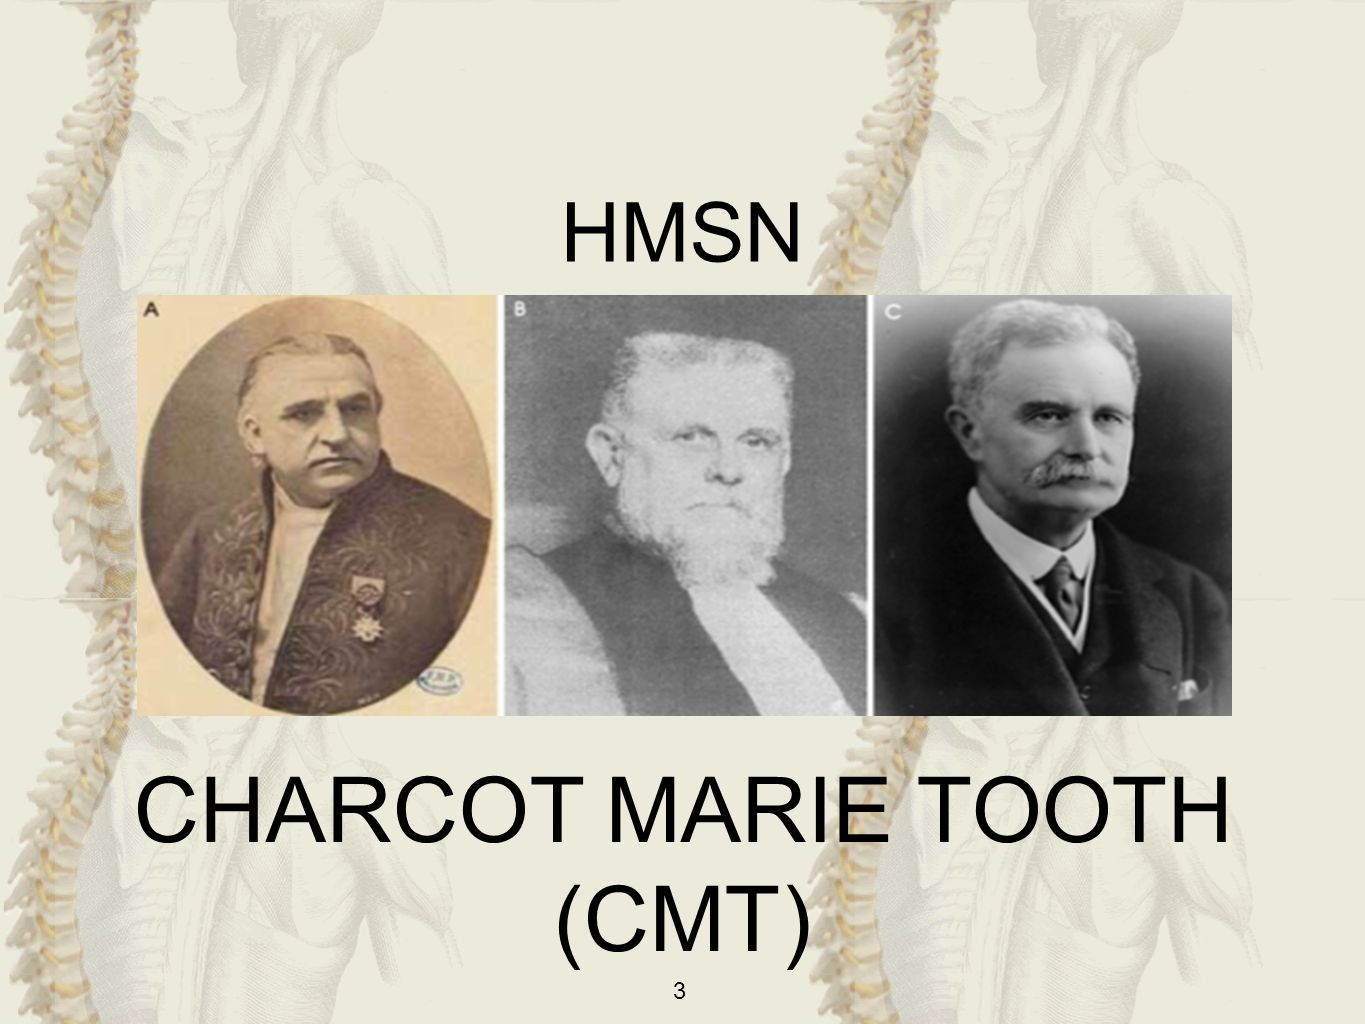 HMSN CHARCOT MARIE TOOTH (CMT)